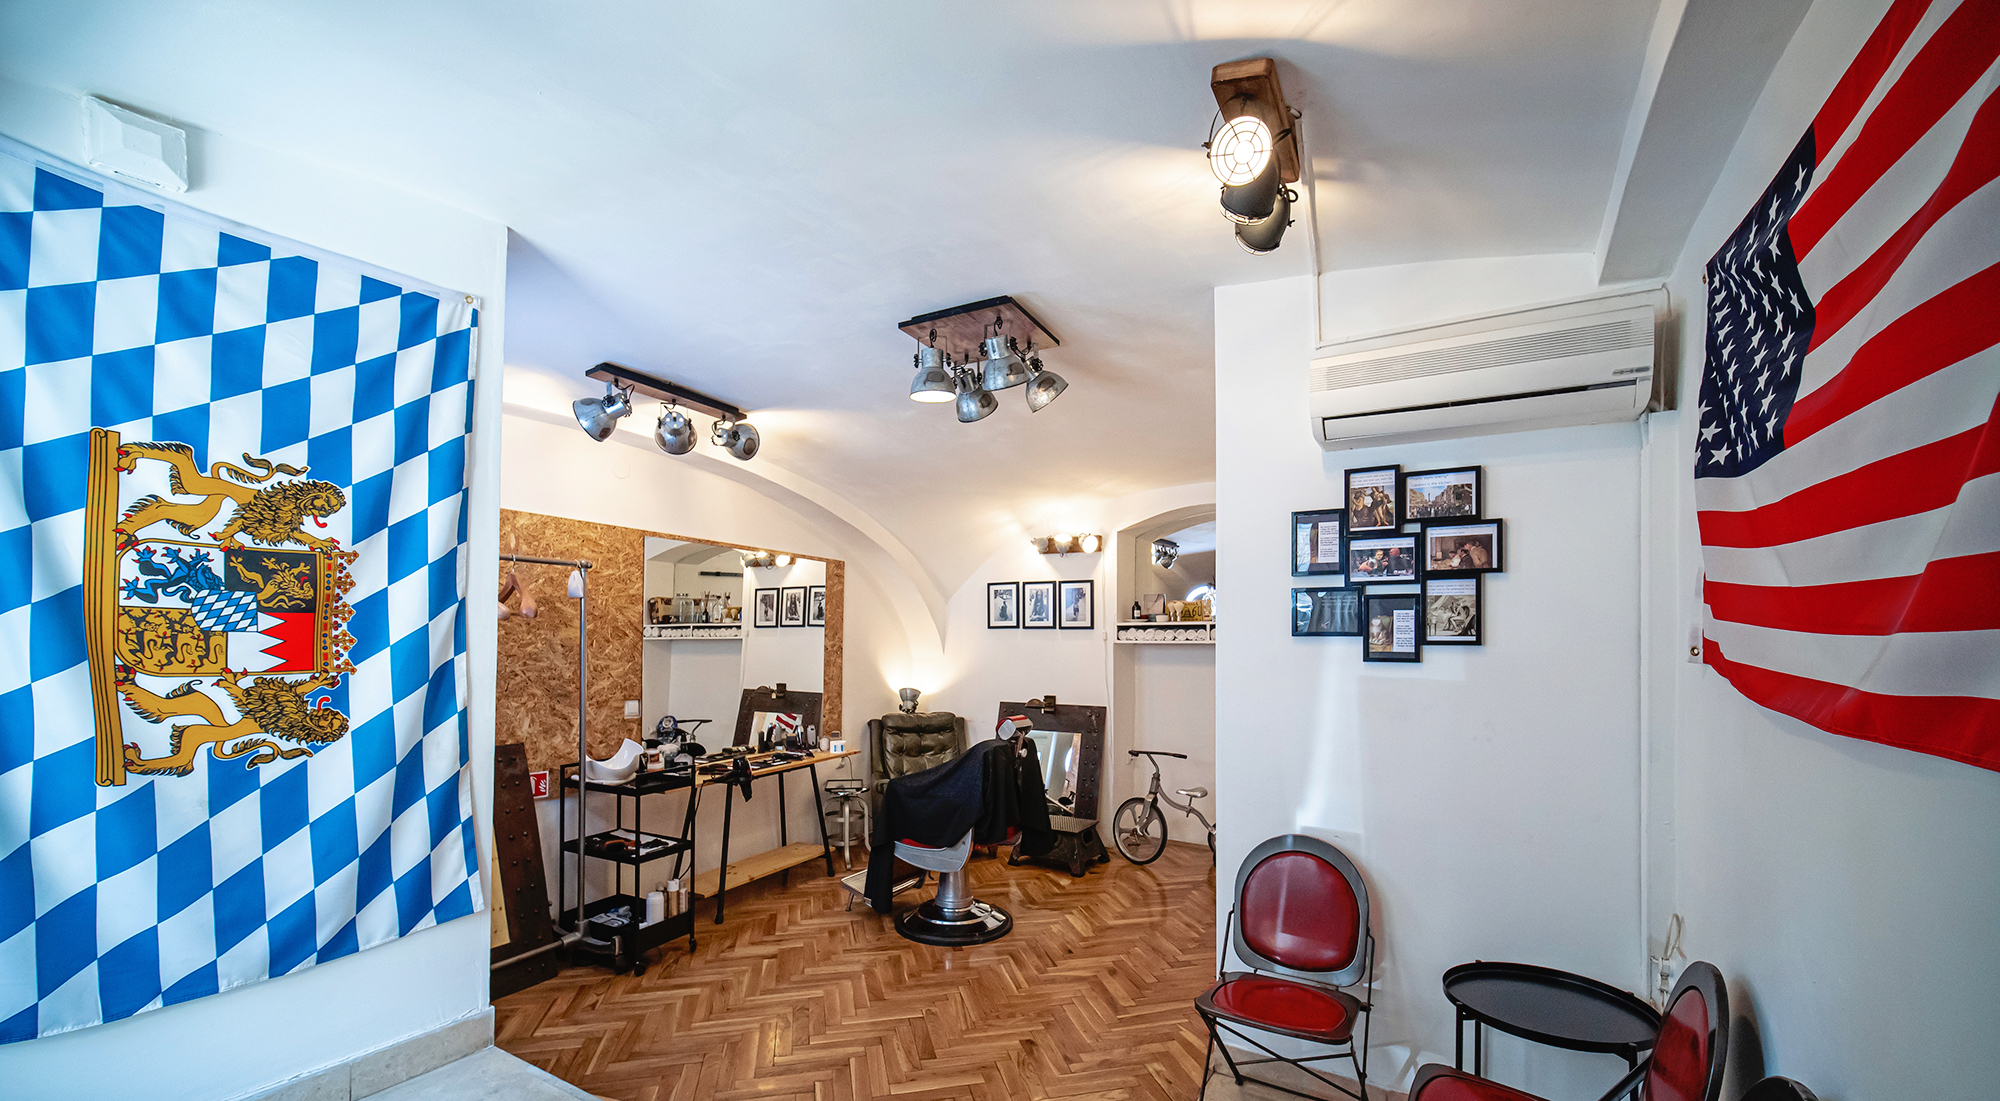 Zagreb's American Barbershop offers anything-but-ordinary cuts and ambience